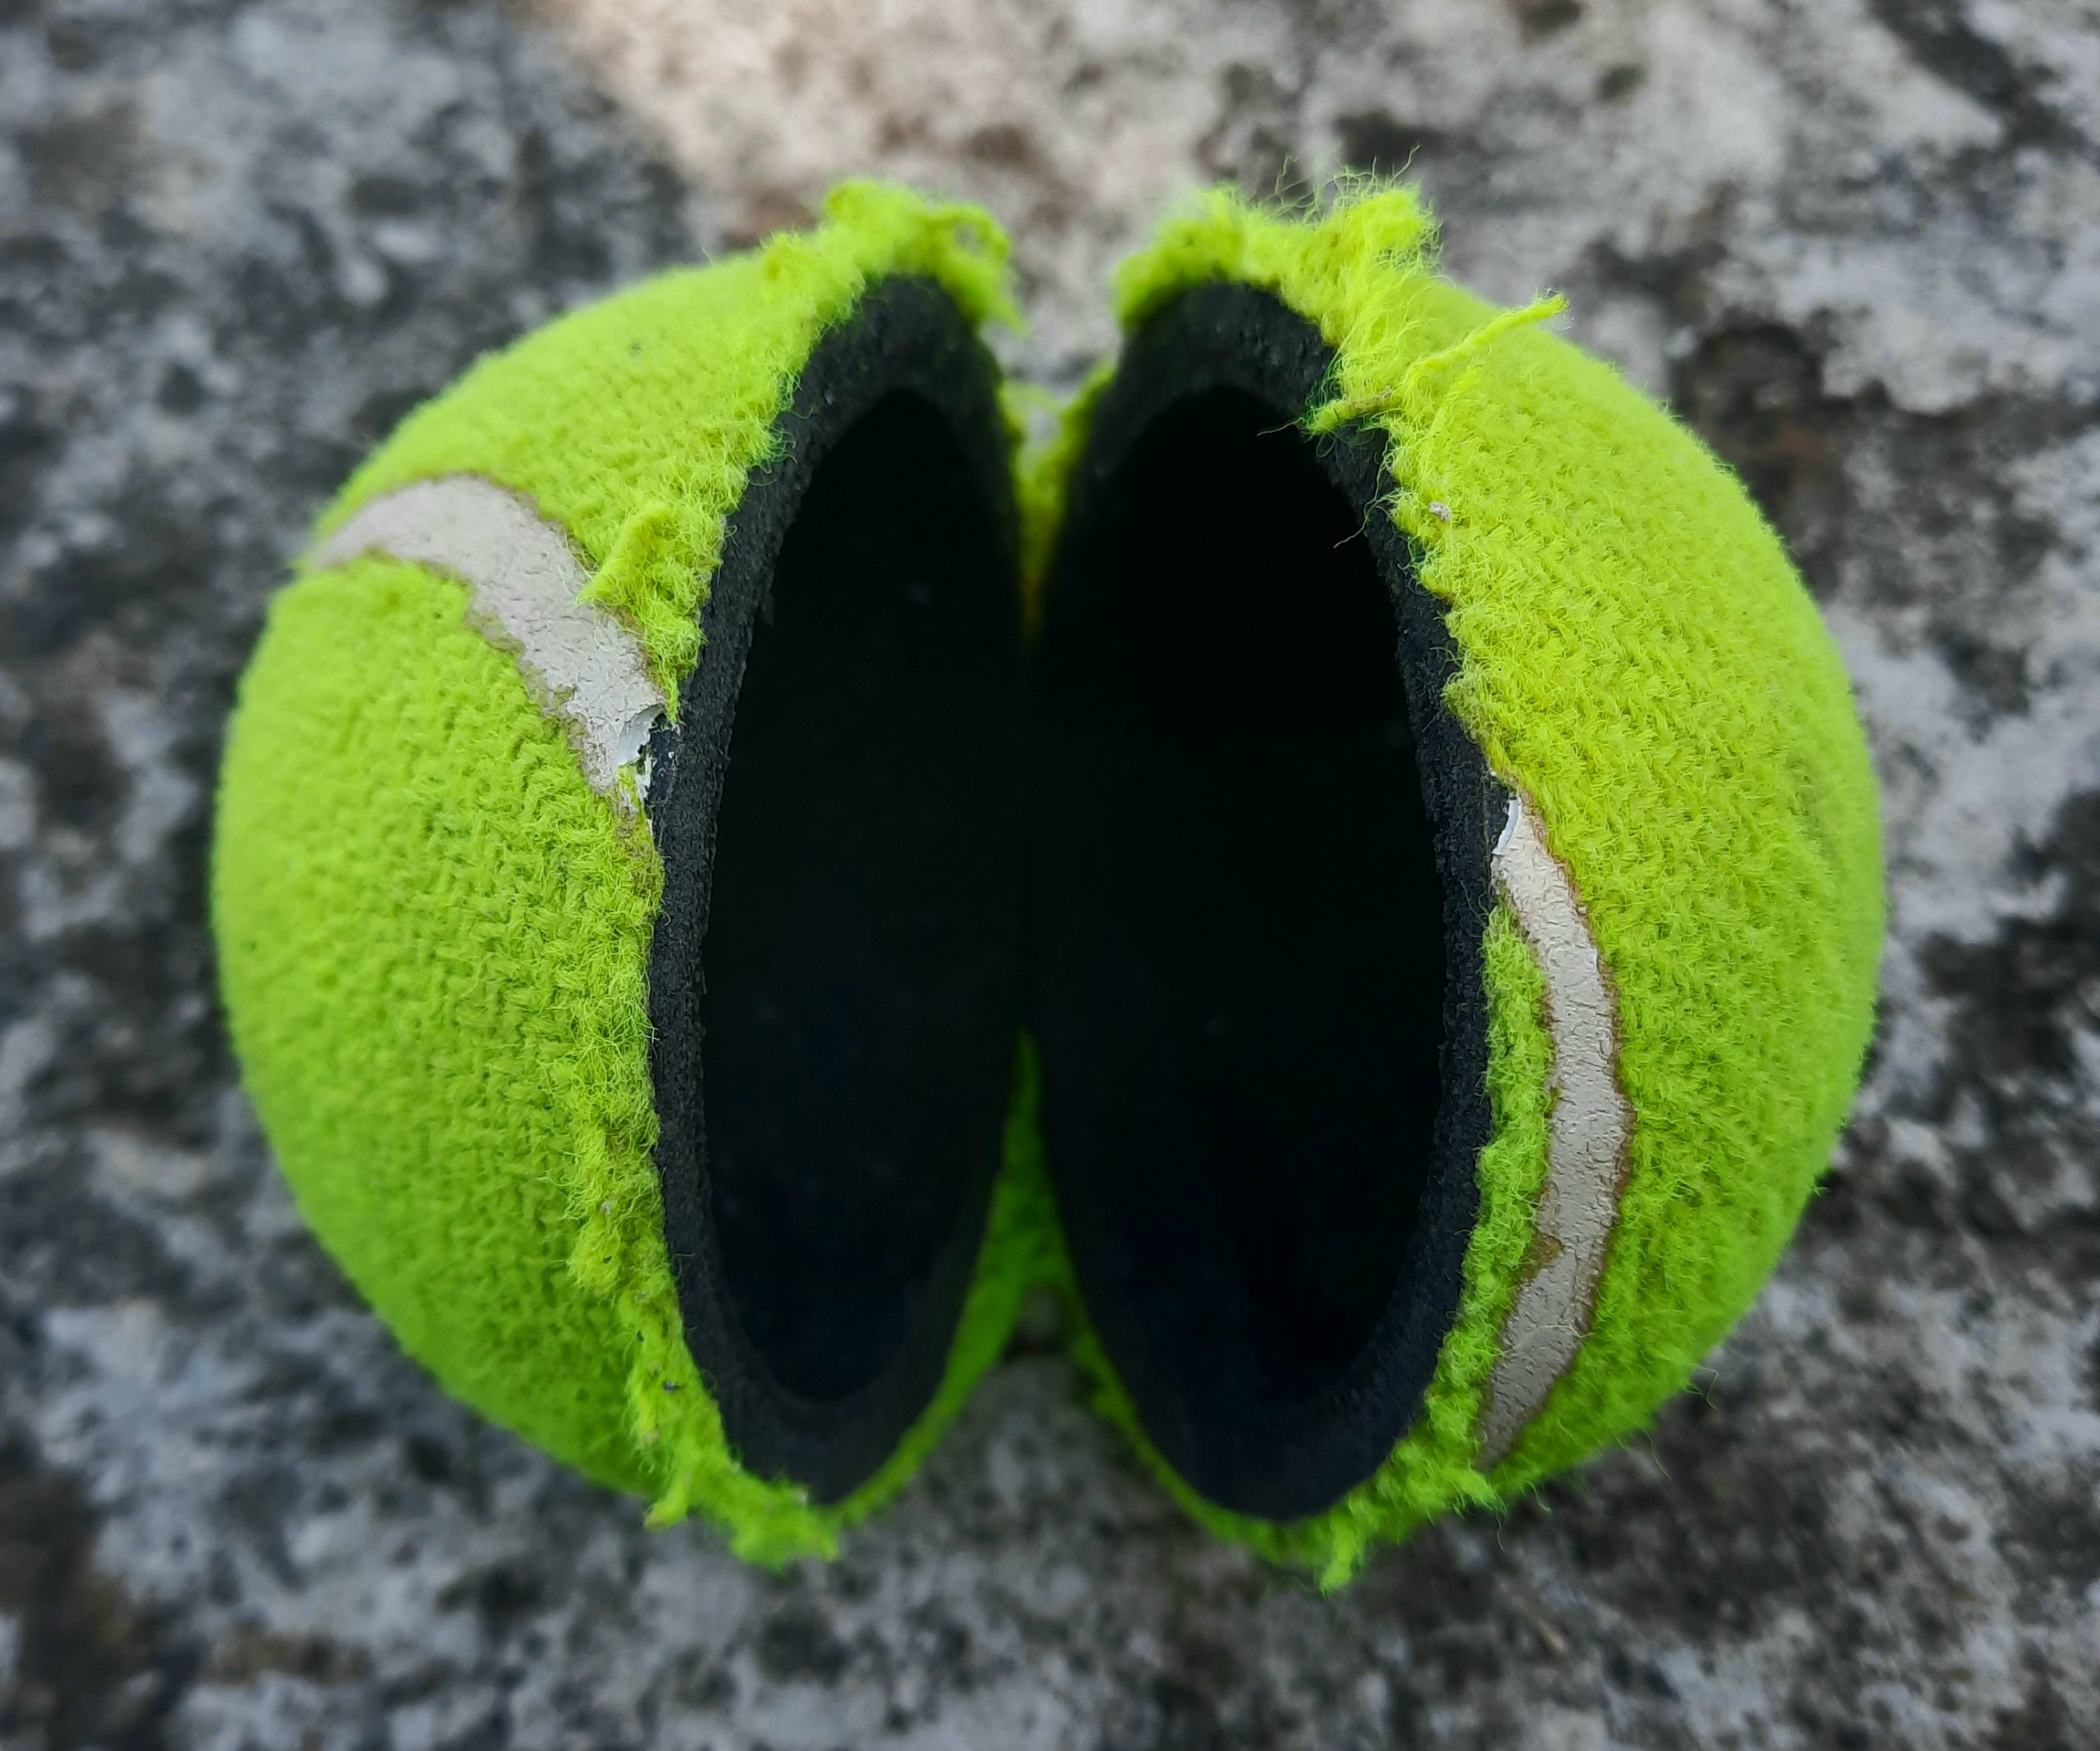 A broken tennis ball